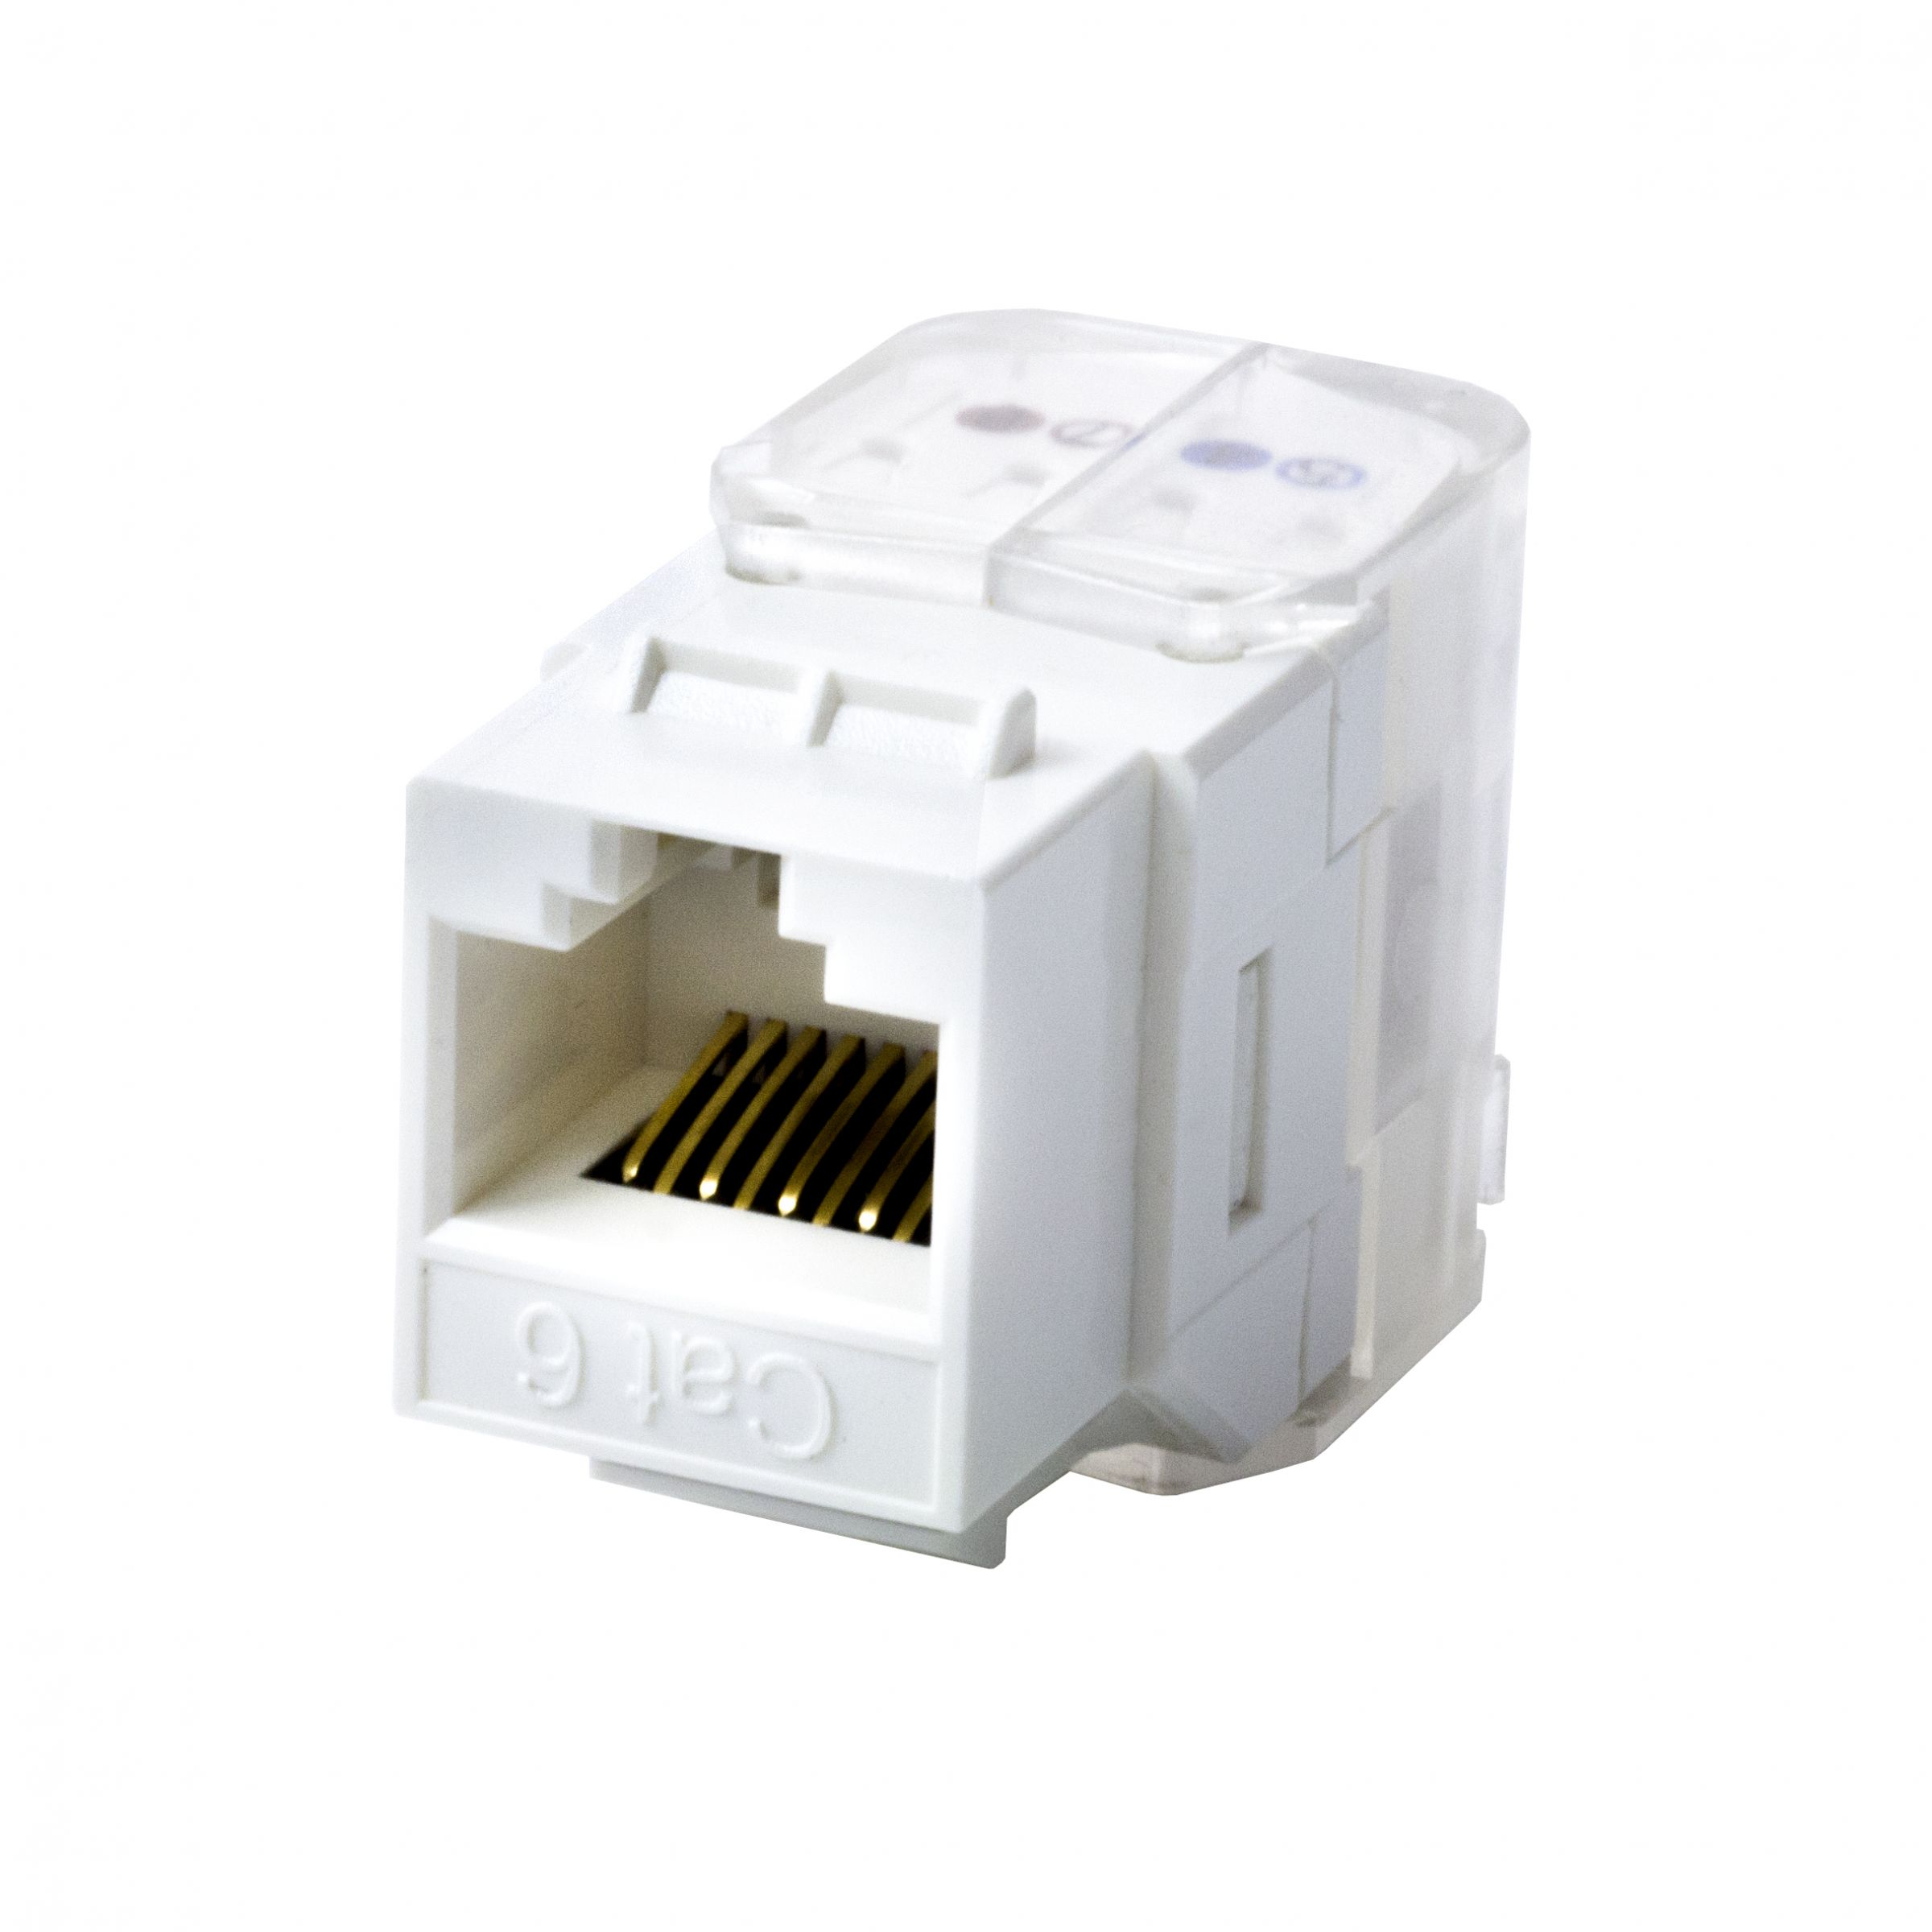 Cat 5e Utp Toolless Type Keystone Jack 12an Series Hsing Chau Wiring Cat6